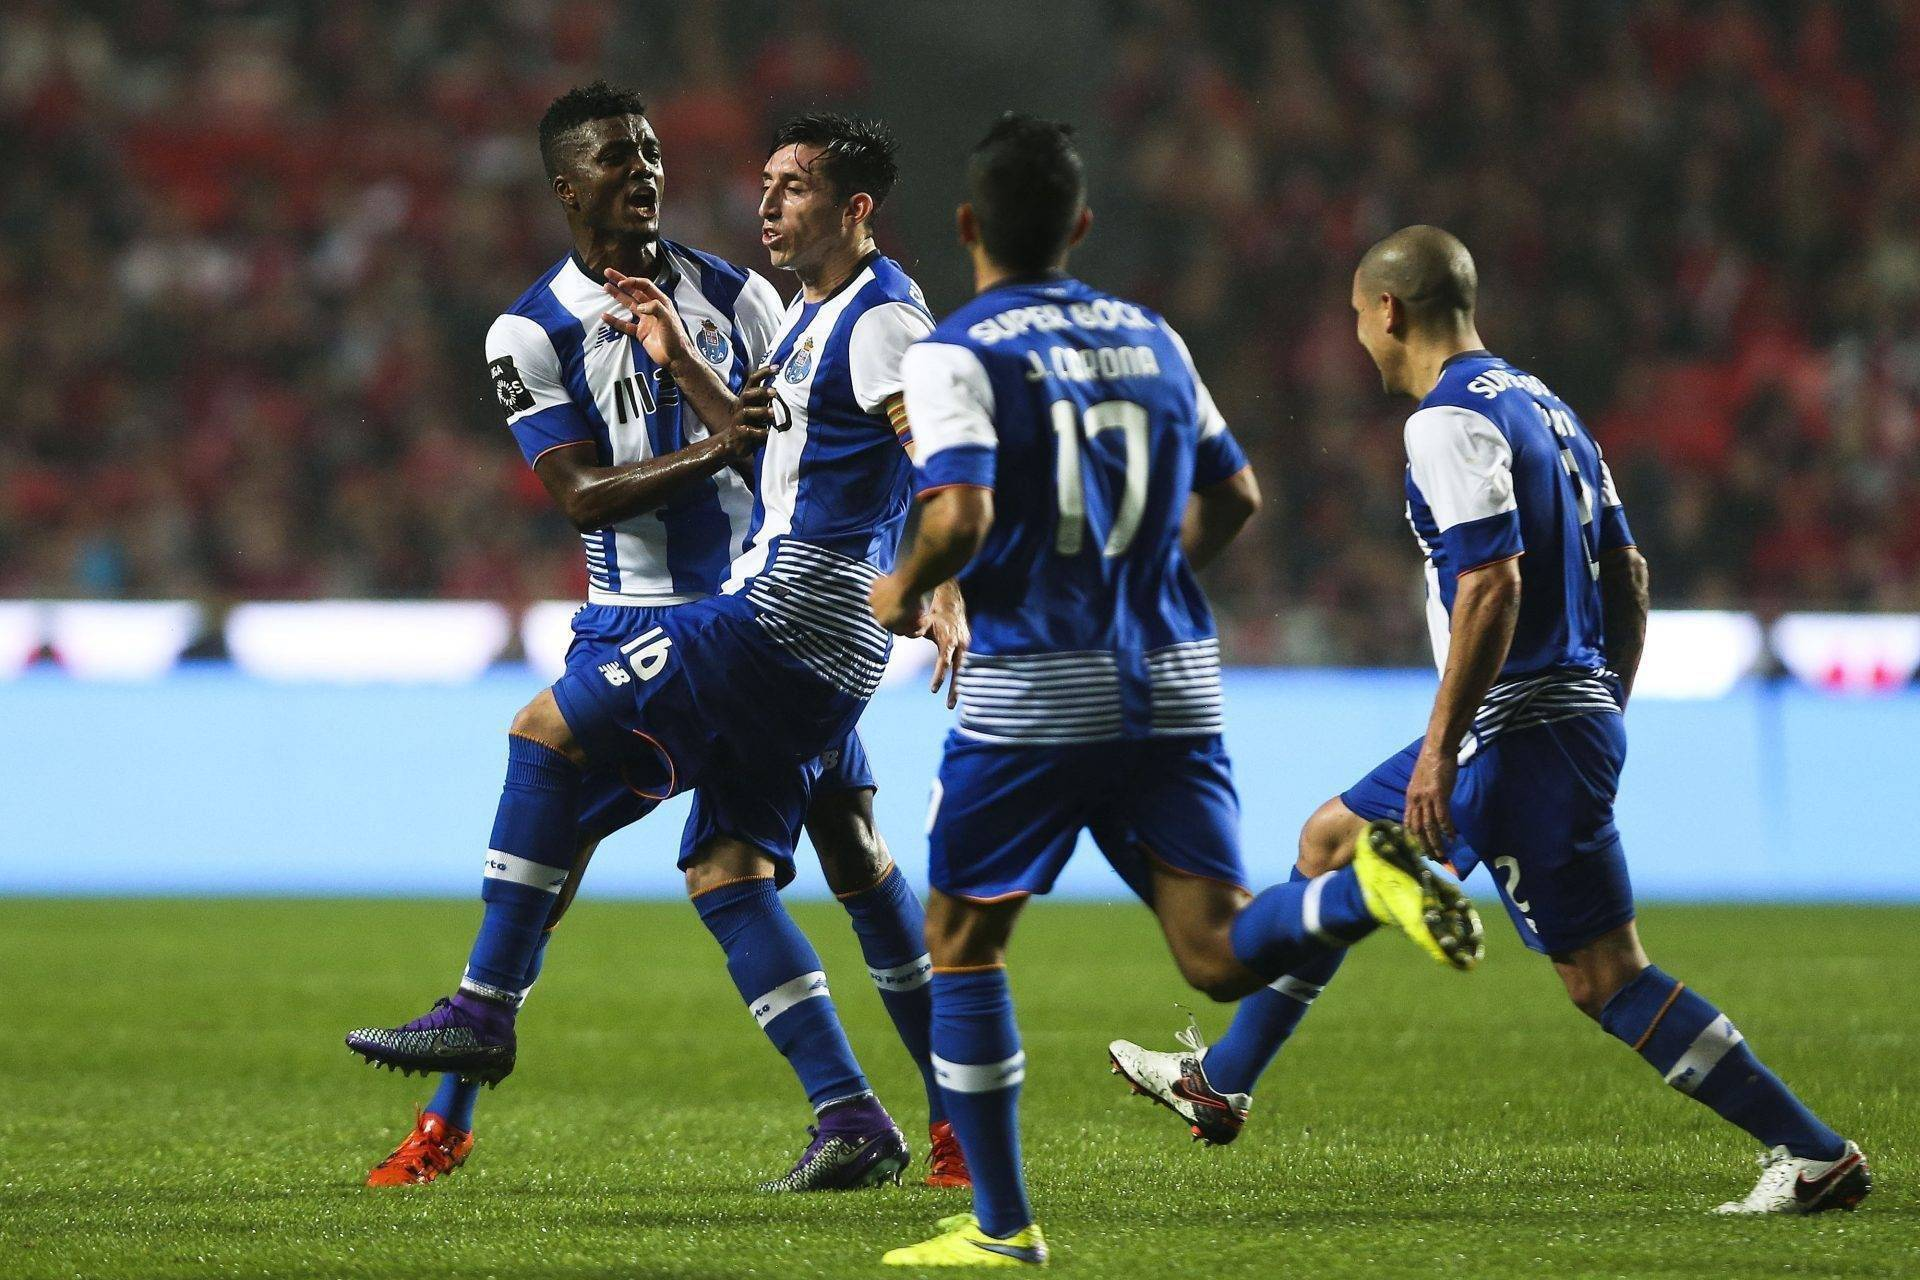 FC Porto`s Herrera (2L) celebrates the scoring of a goal against Benfica during their Portuguese First League soccer match at Luz Stadium, in Lisbon, Portugal, 12th February 2016. JOSE SENA GOULAO/LUSA